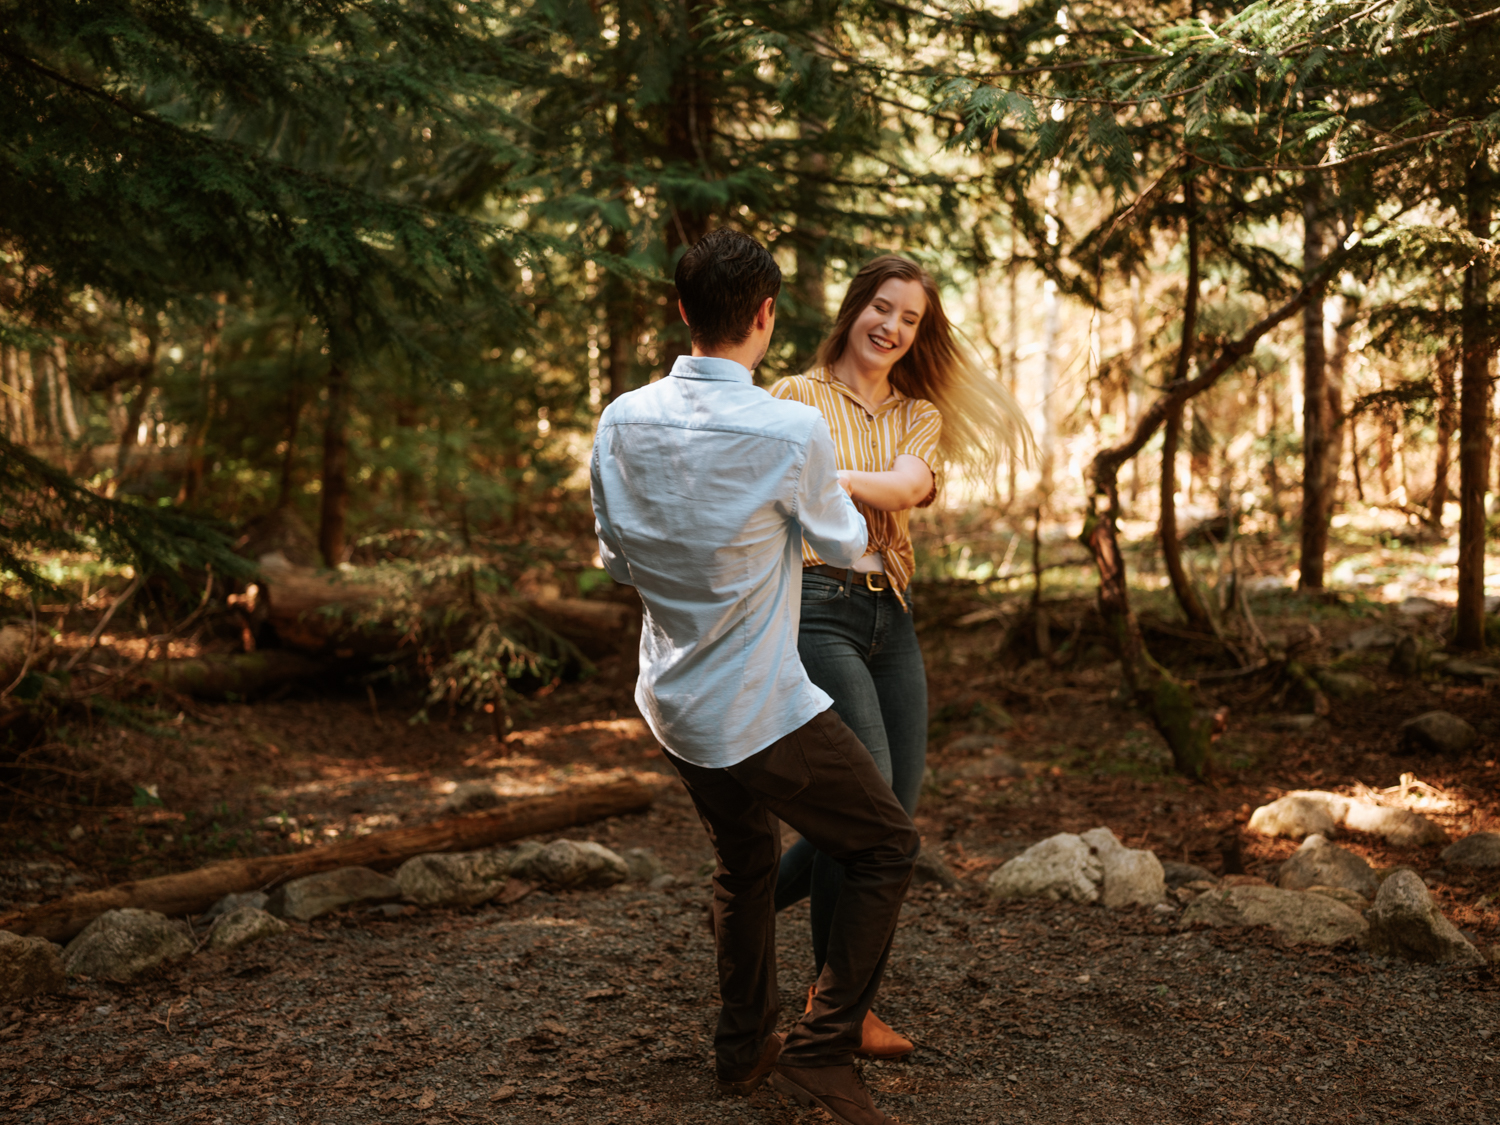 Franklin Falls Washington Engagement Session Stolen Glimpses Seattle Wedding Photographer 41.jpg